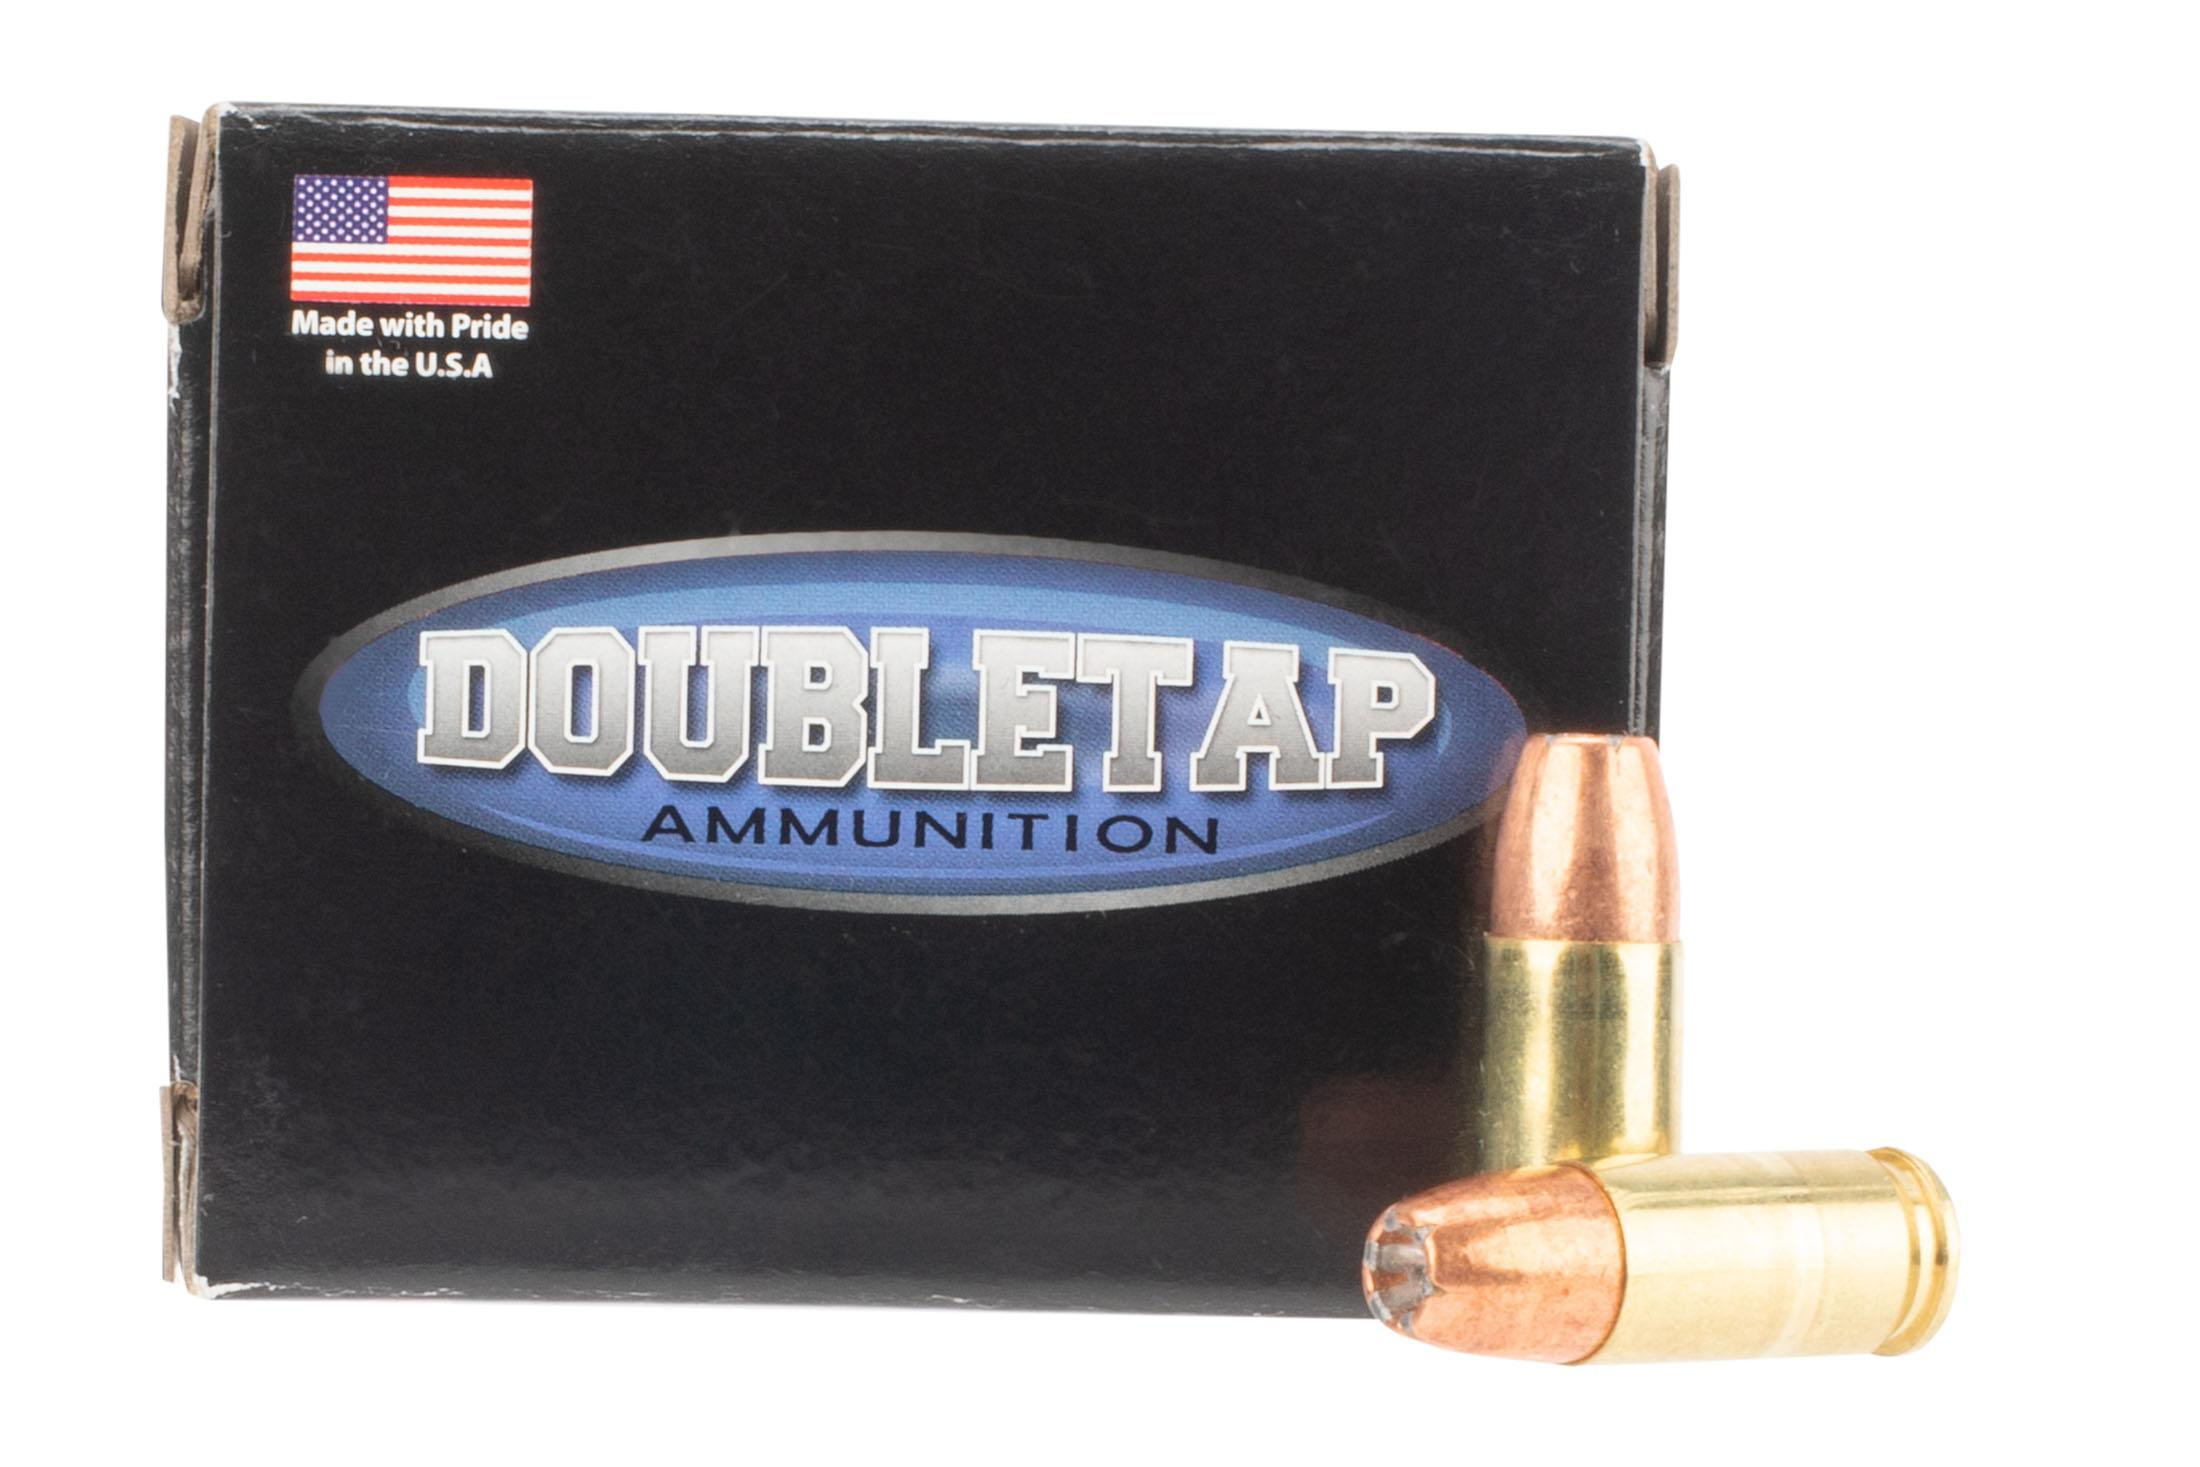 9mm Solid Copper Ammo from G2 Research and DoubleTap Ammunition